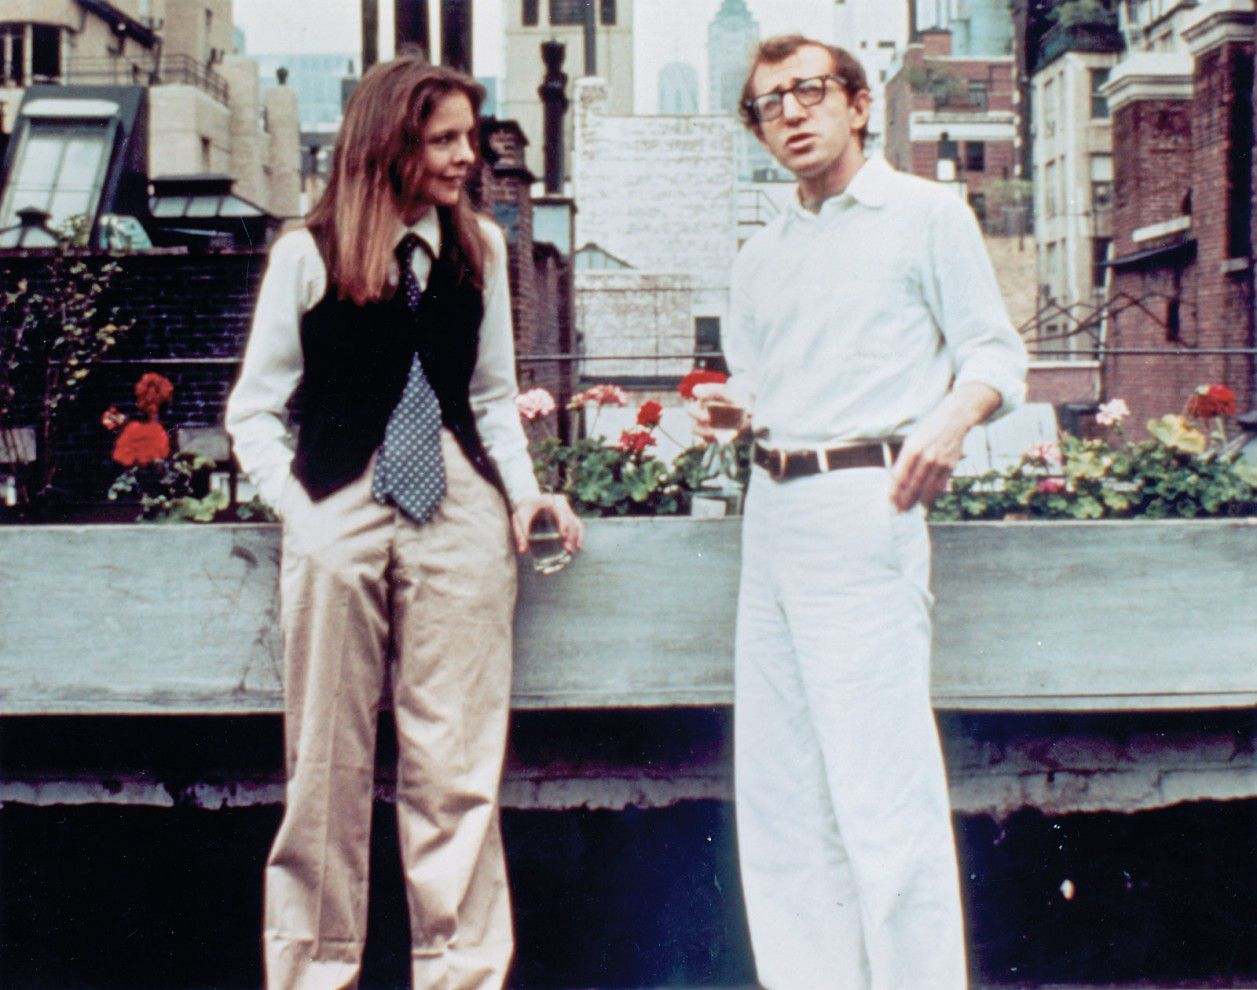 woody-allen-annie-hall-diane-keaton-quote-garbage-into-tv-shows